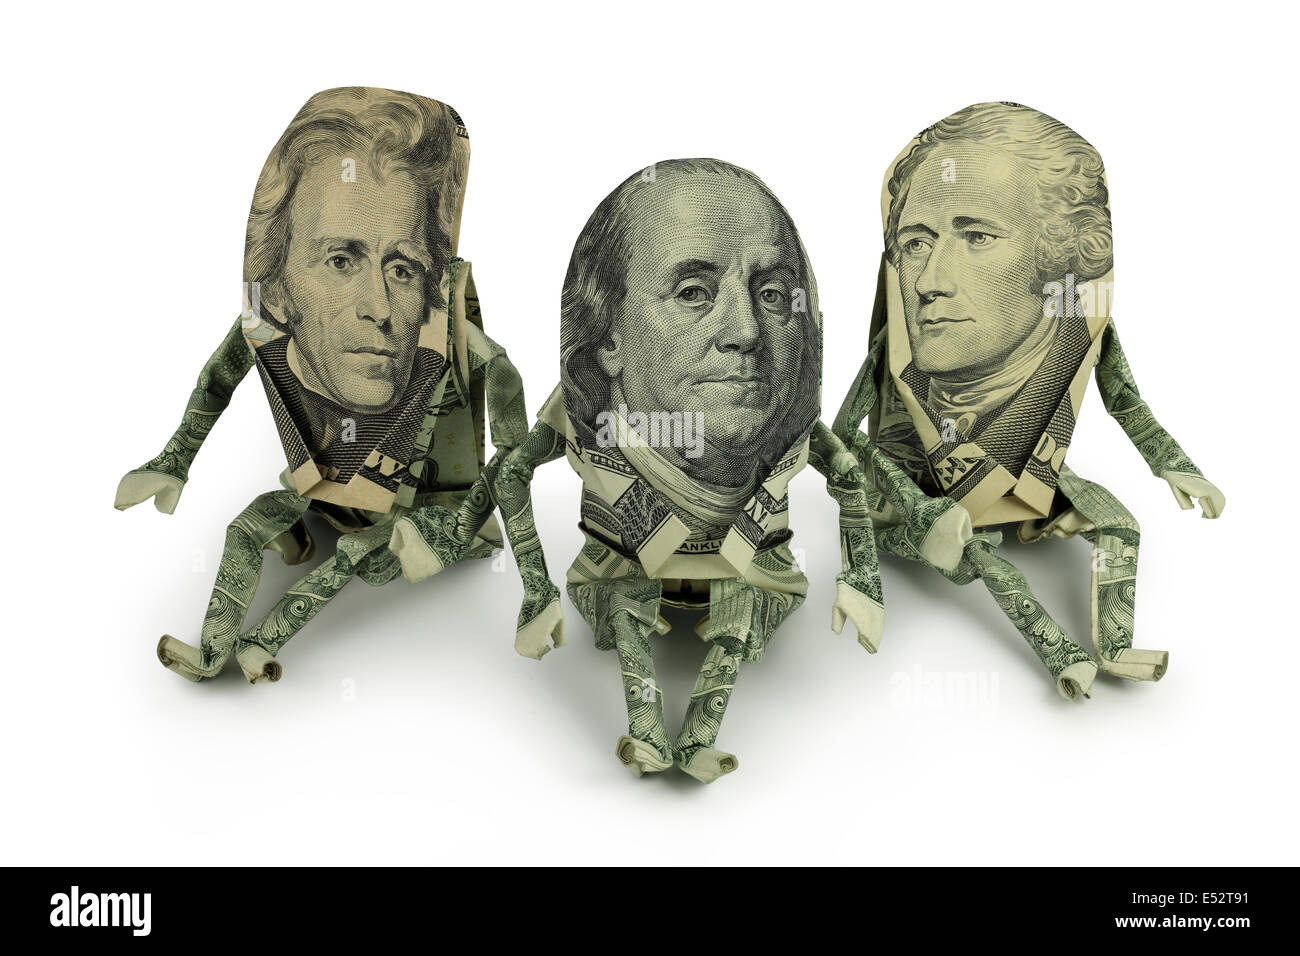 3 Origami Human Figures Made From US Currency With Ben Franklin In The Middle